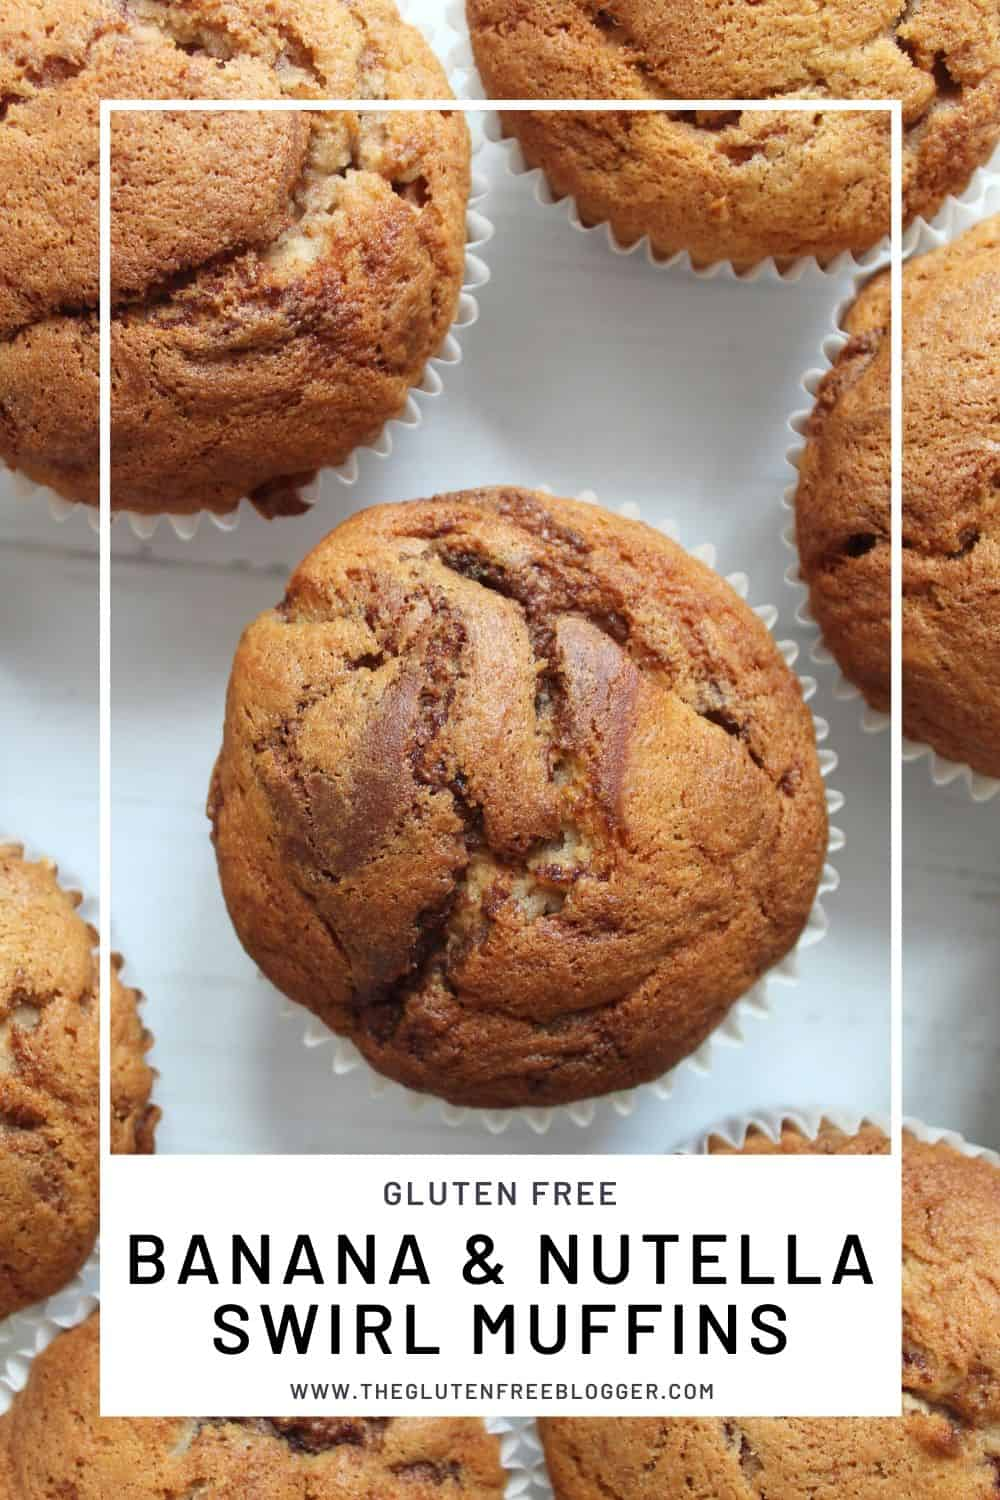 gluten free banana and nutella swirl muffins recipe rice flour cake (2)